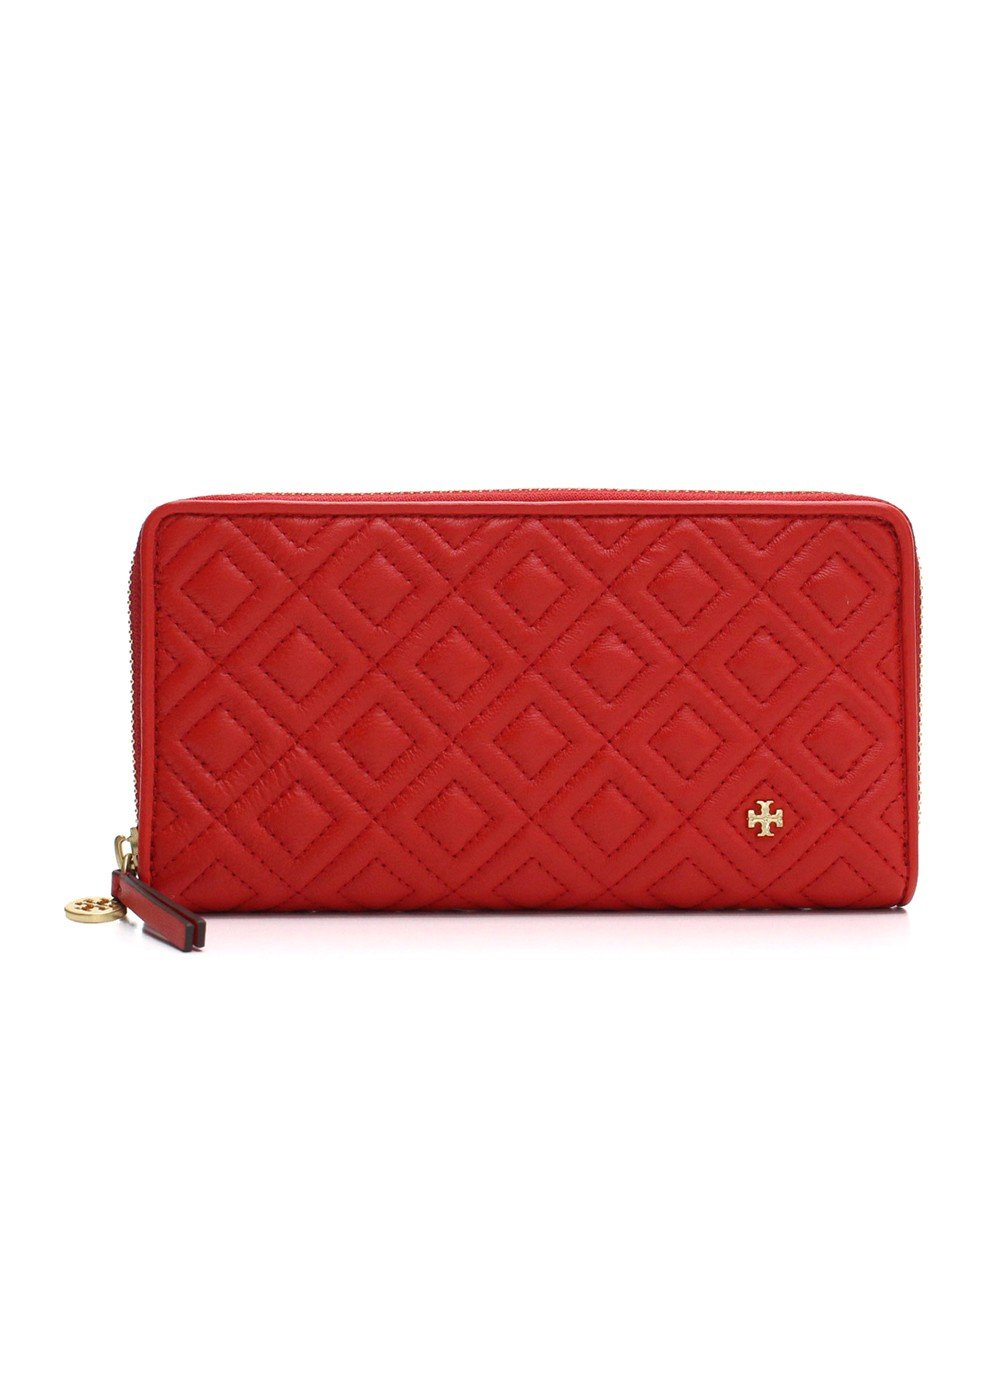 TORY BURCH|トリバーチ|FLEMING|フレミング|QUILTED LEATHER ZIP CONTINENTAL WALLET